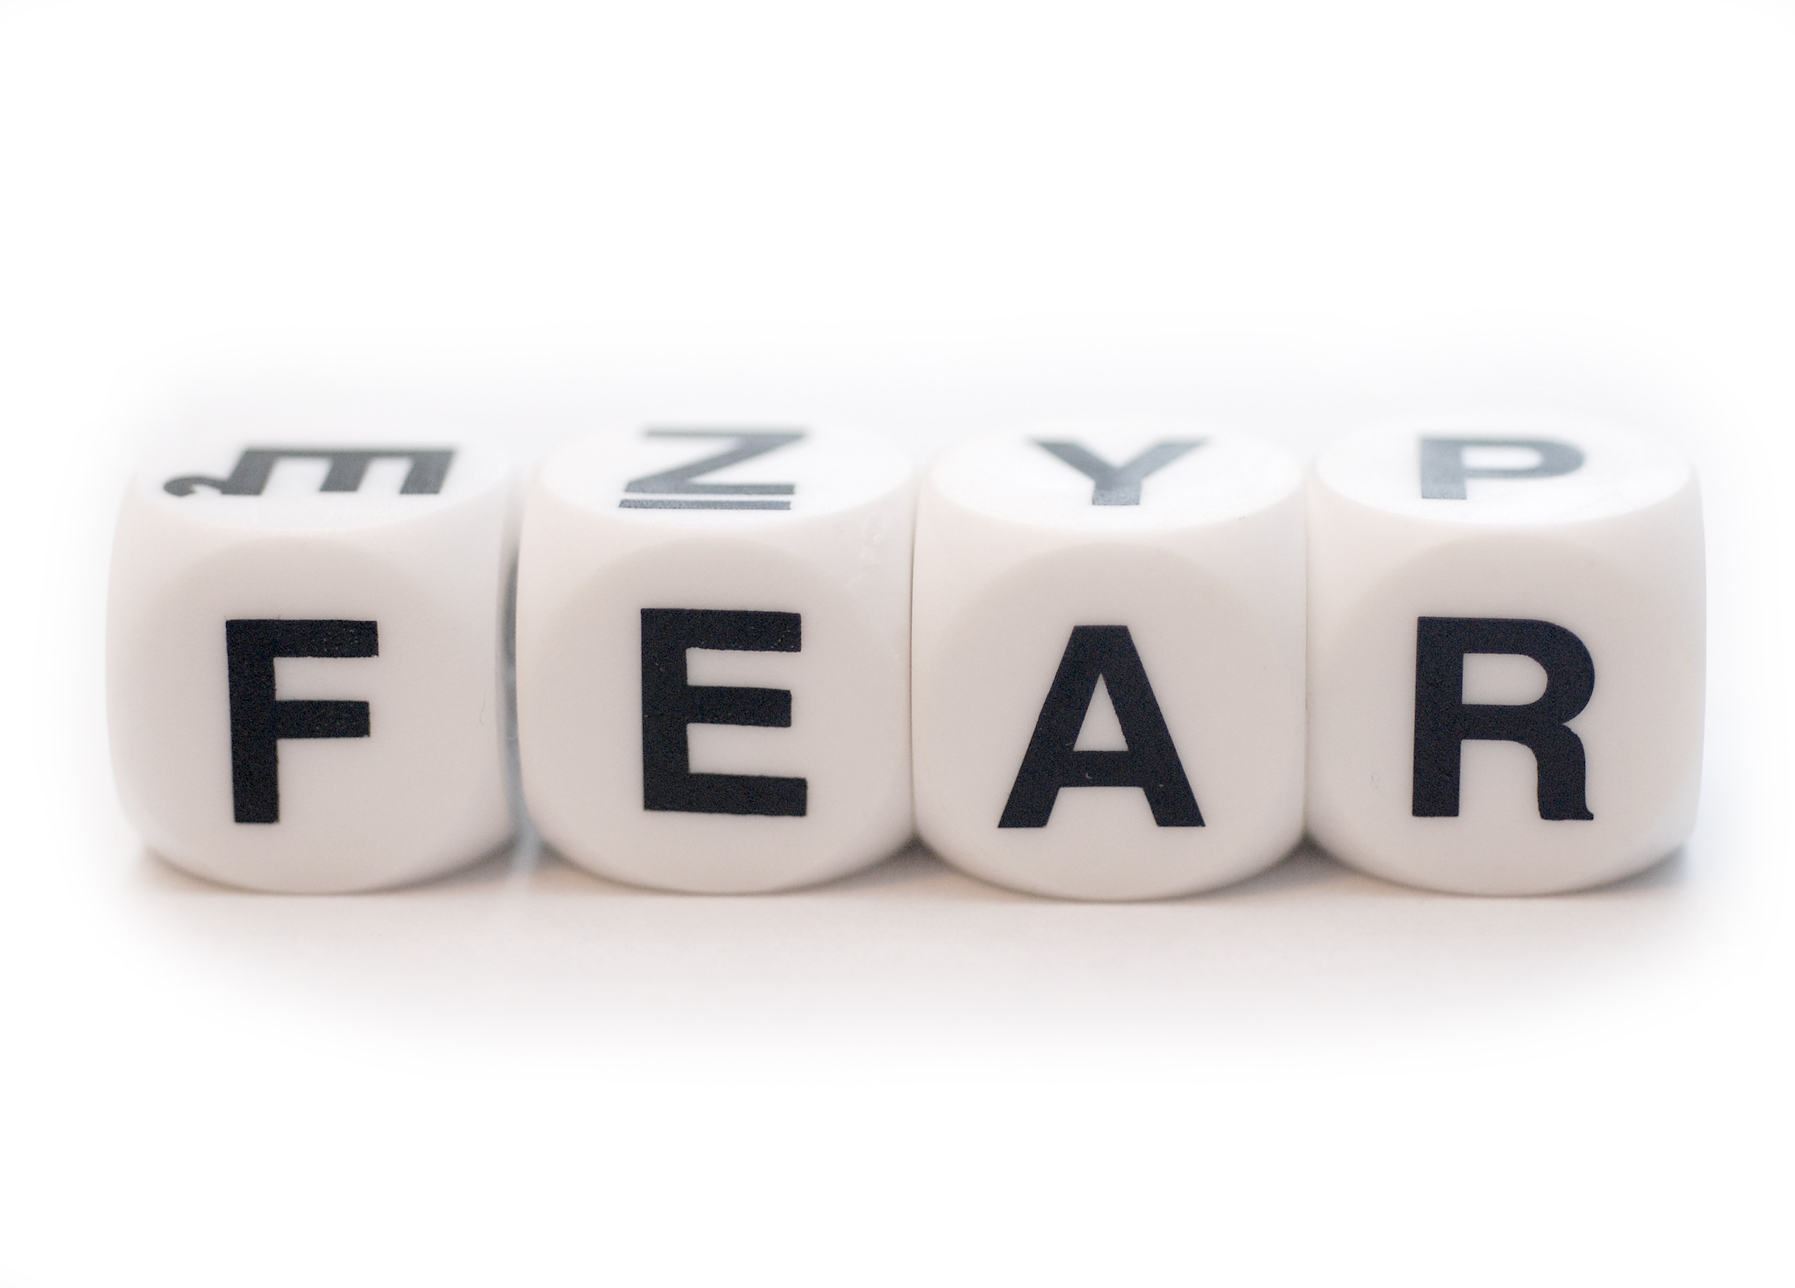 Try hypnosis to overcome your fear now!